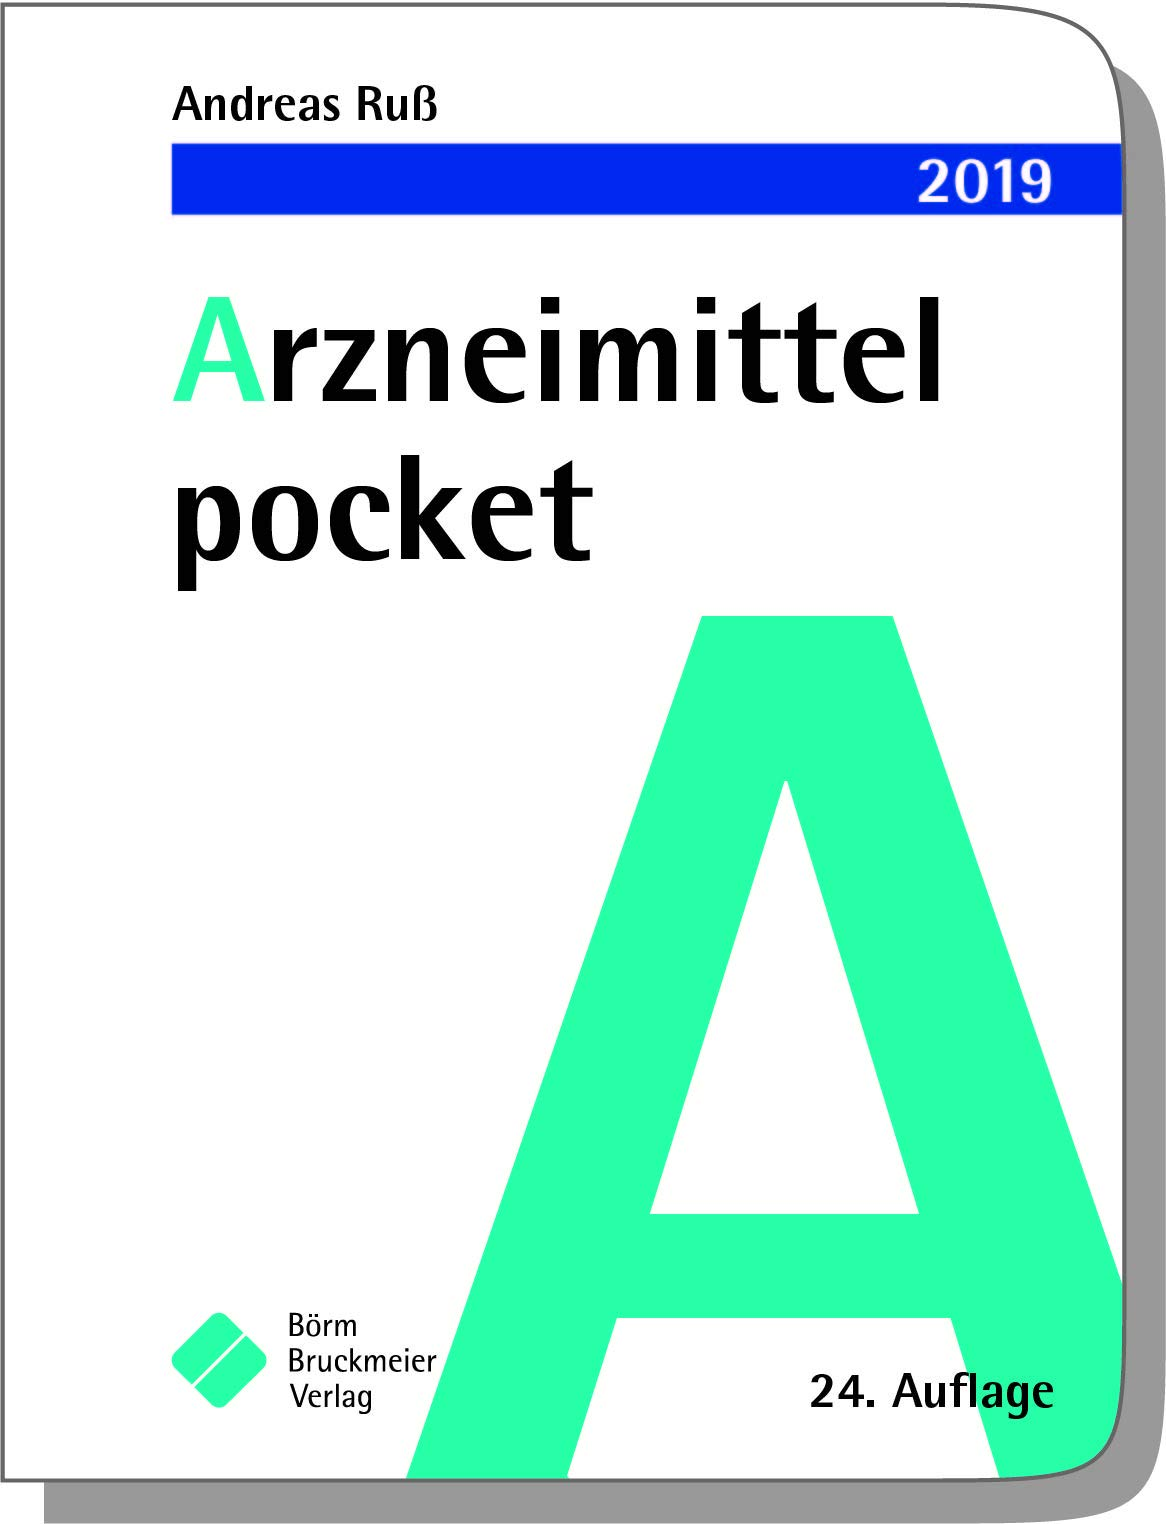 Arzneimittel pocket 2019 (pockets)